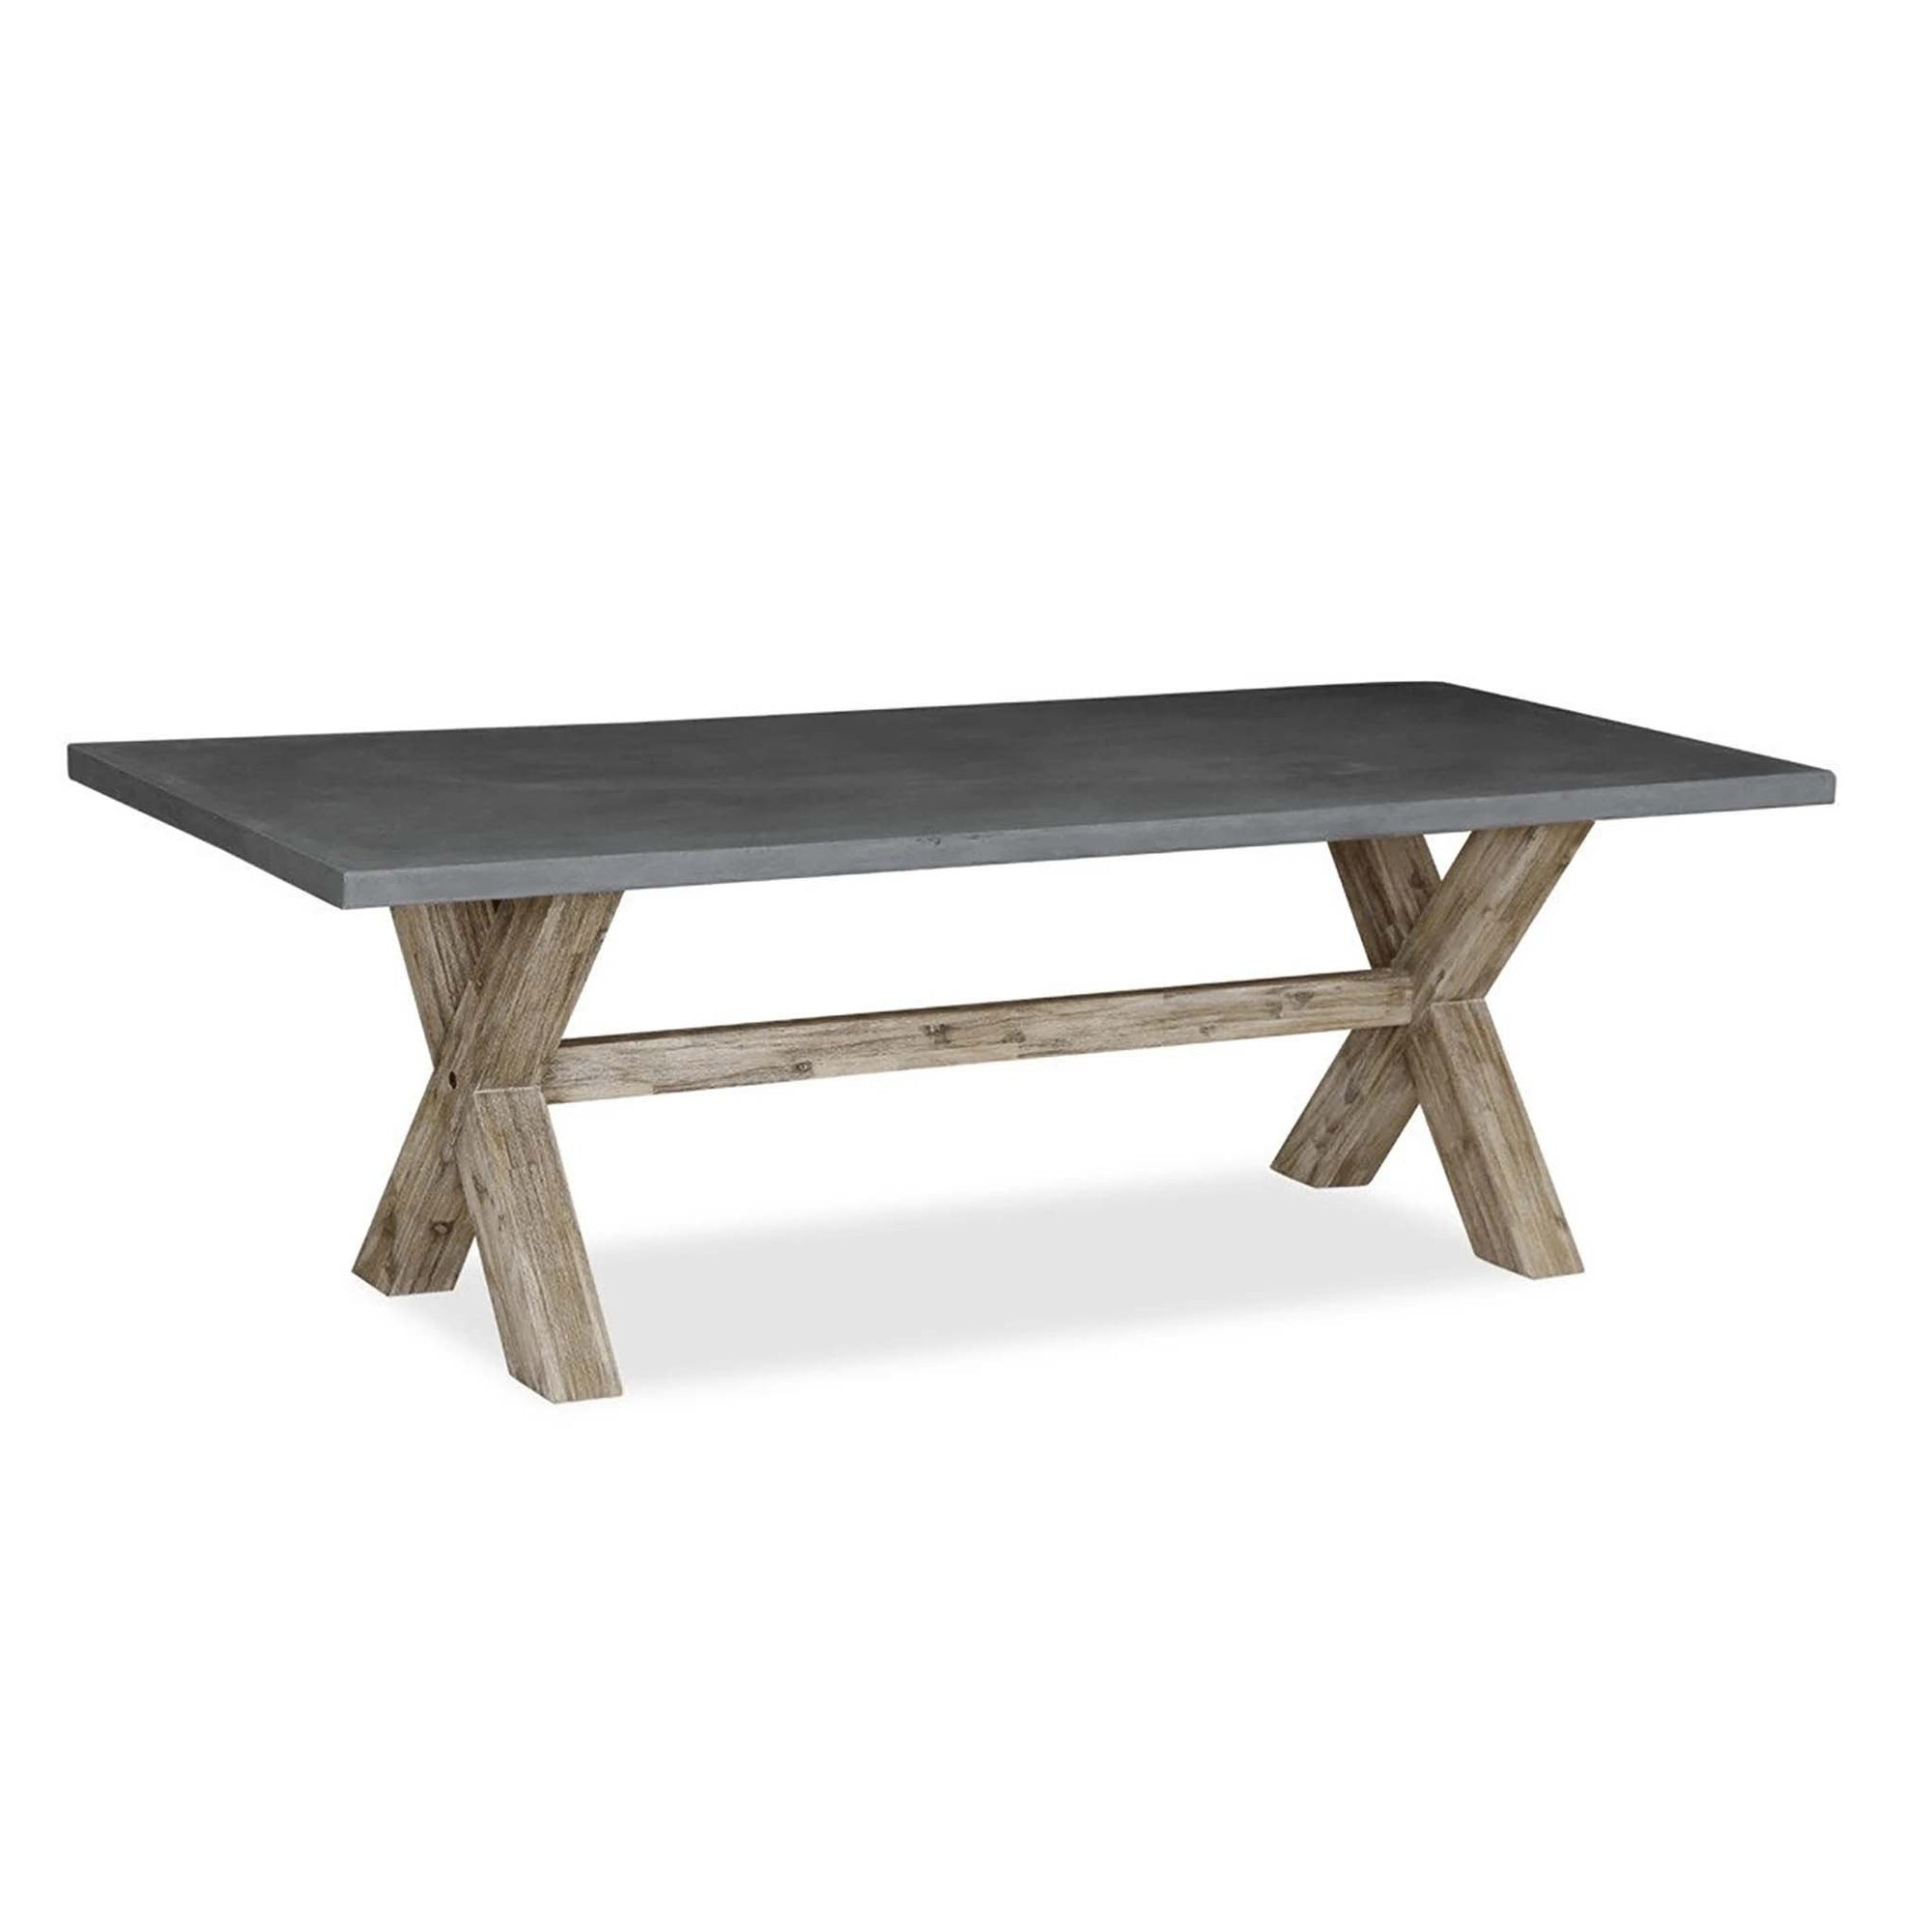 Rock Concrete Dining Table by Roseland Furniture